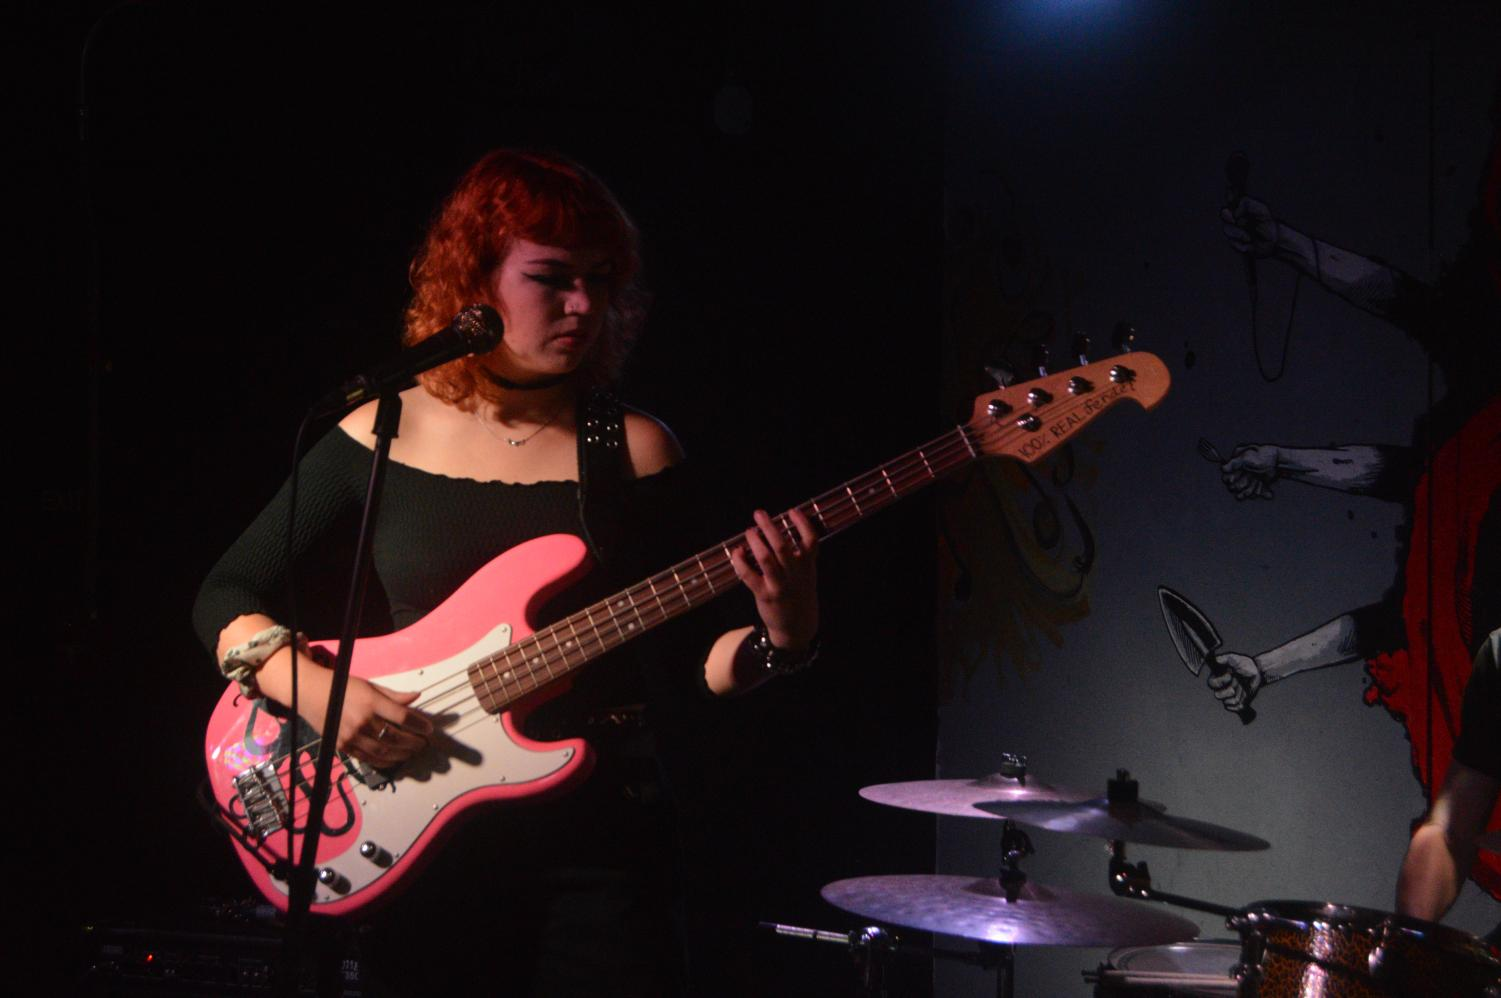 Carley Fischer, the lead singer of San Diego punk band Creature Culture, performing at the Che Cafe on April 19.